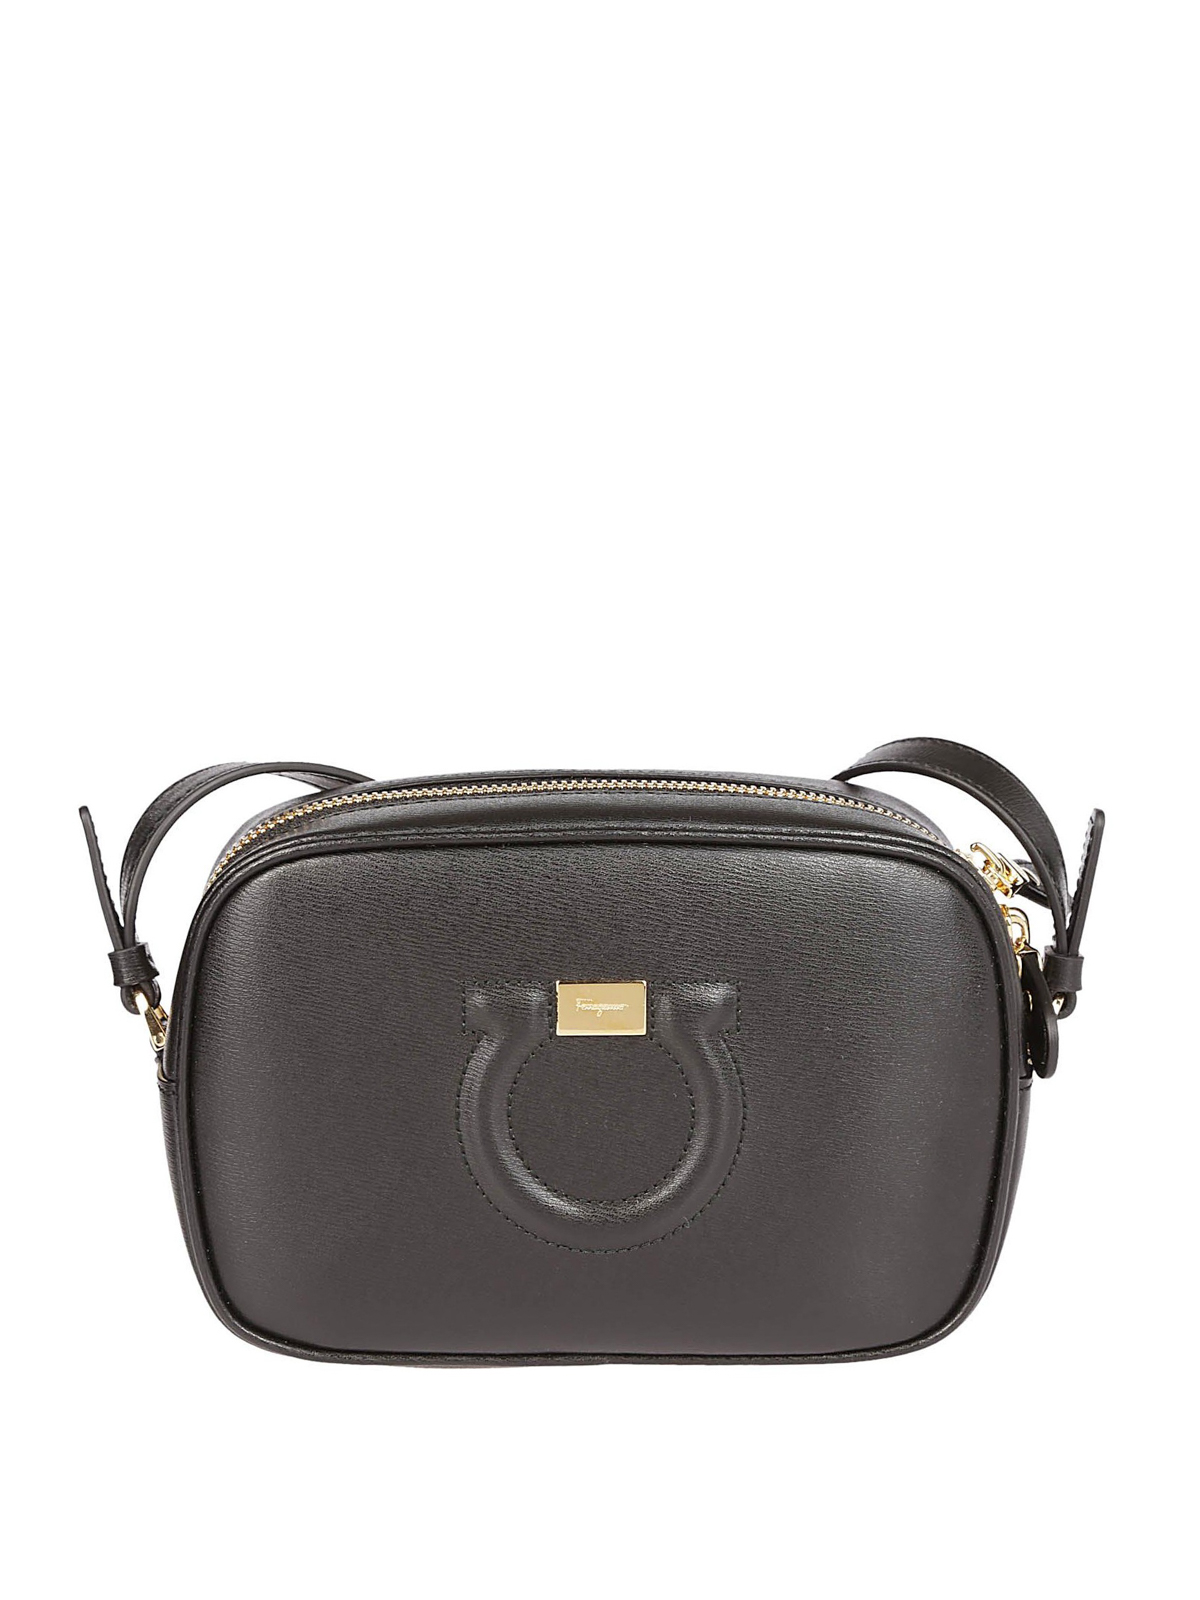 814d7431f7 Salvatore Ferragamo - Gancini calfskin small camera bag - cross body ...